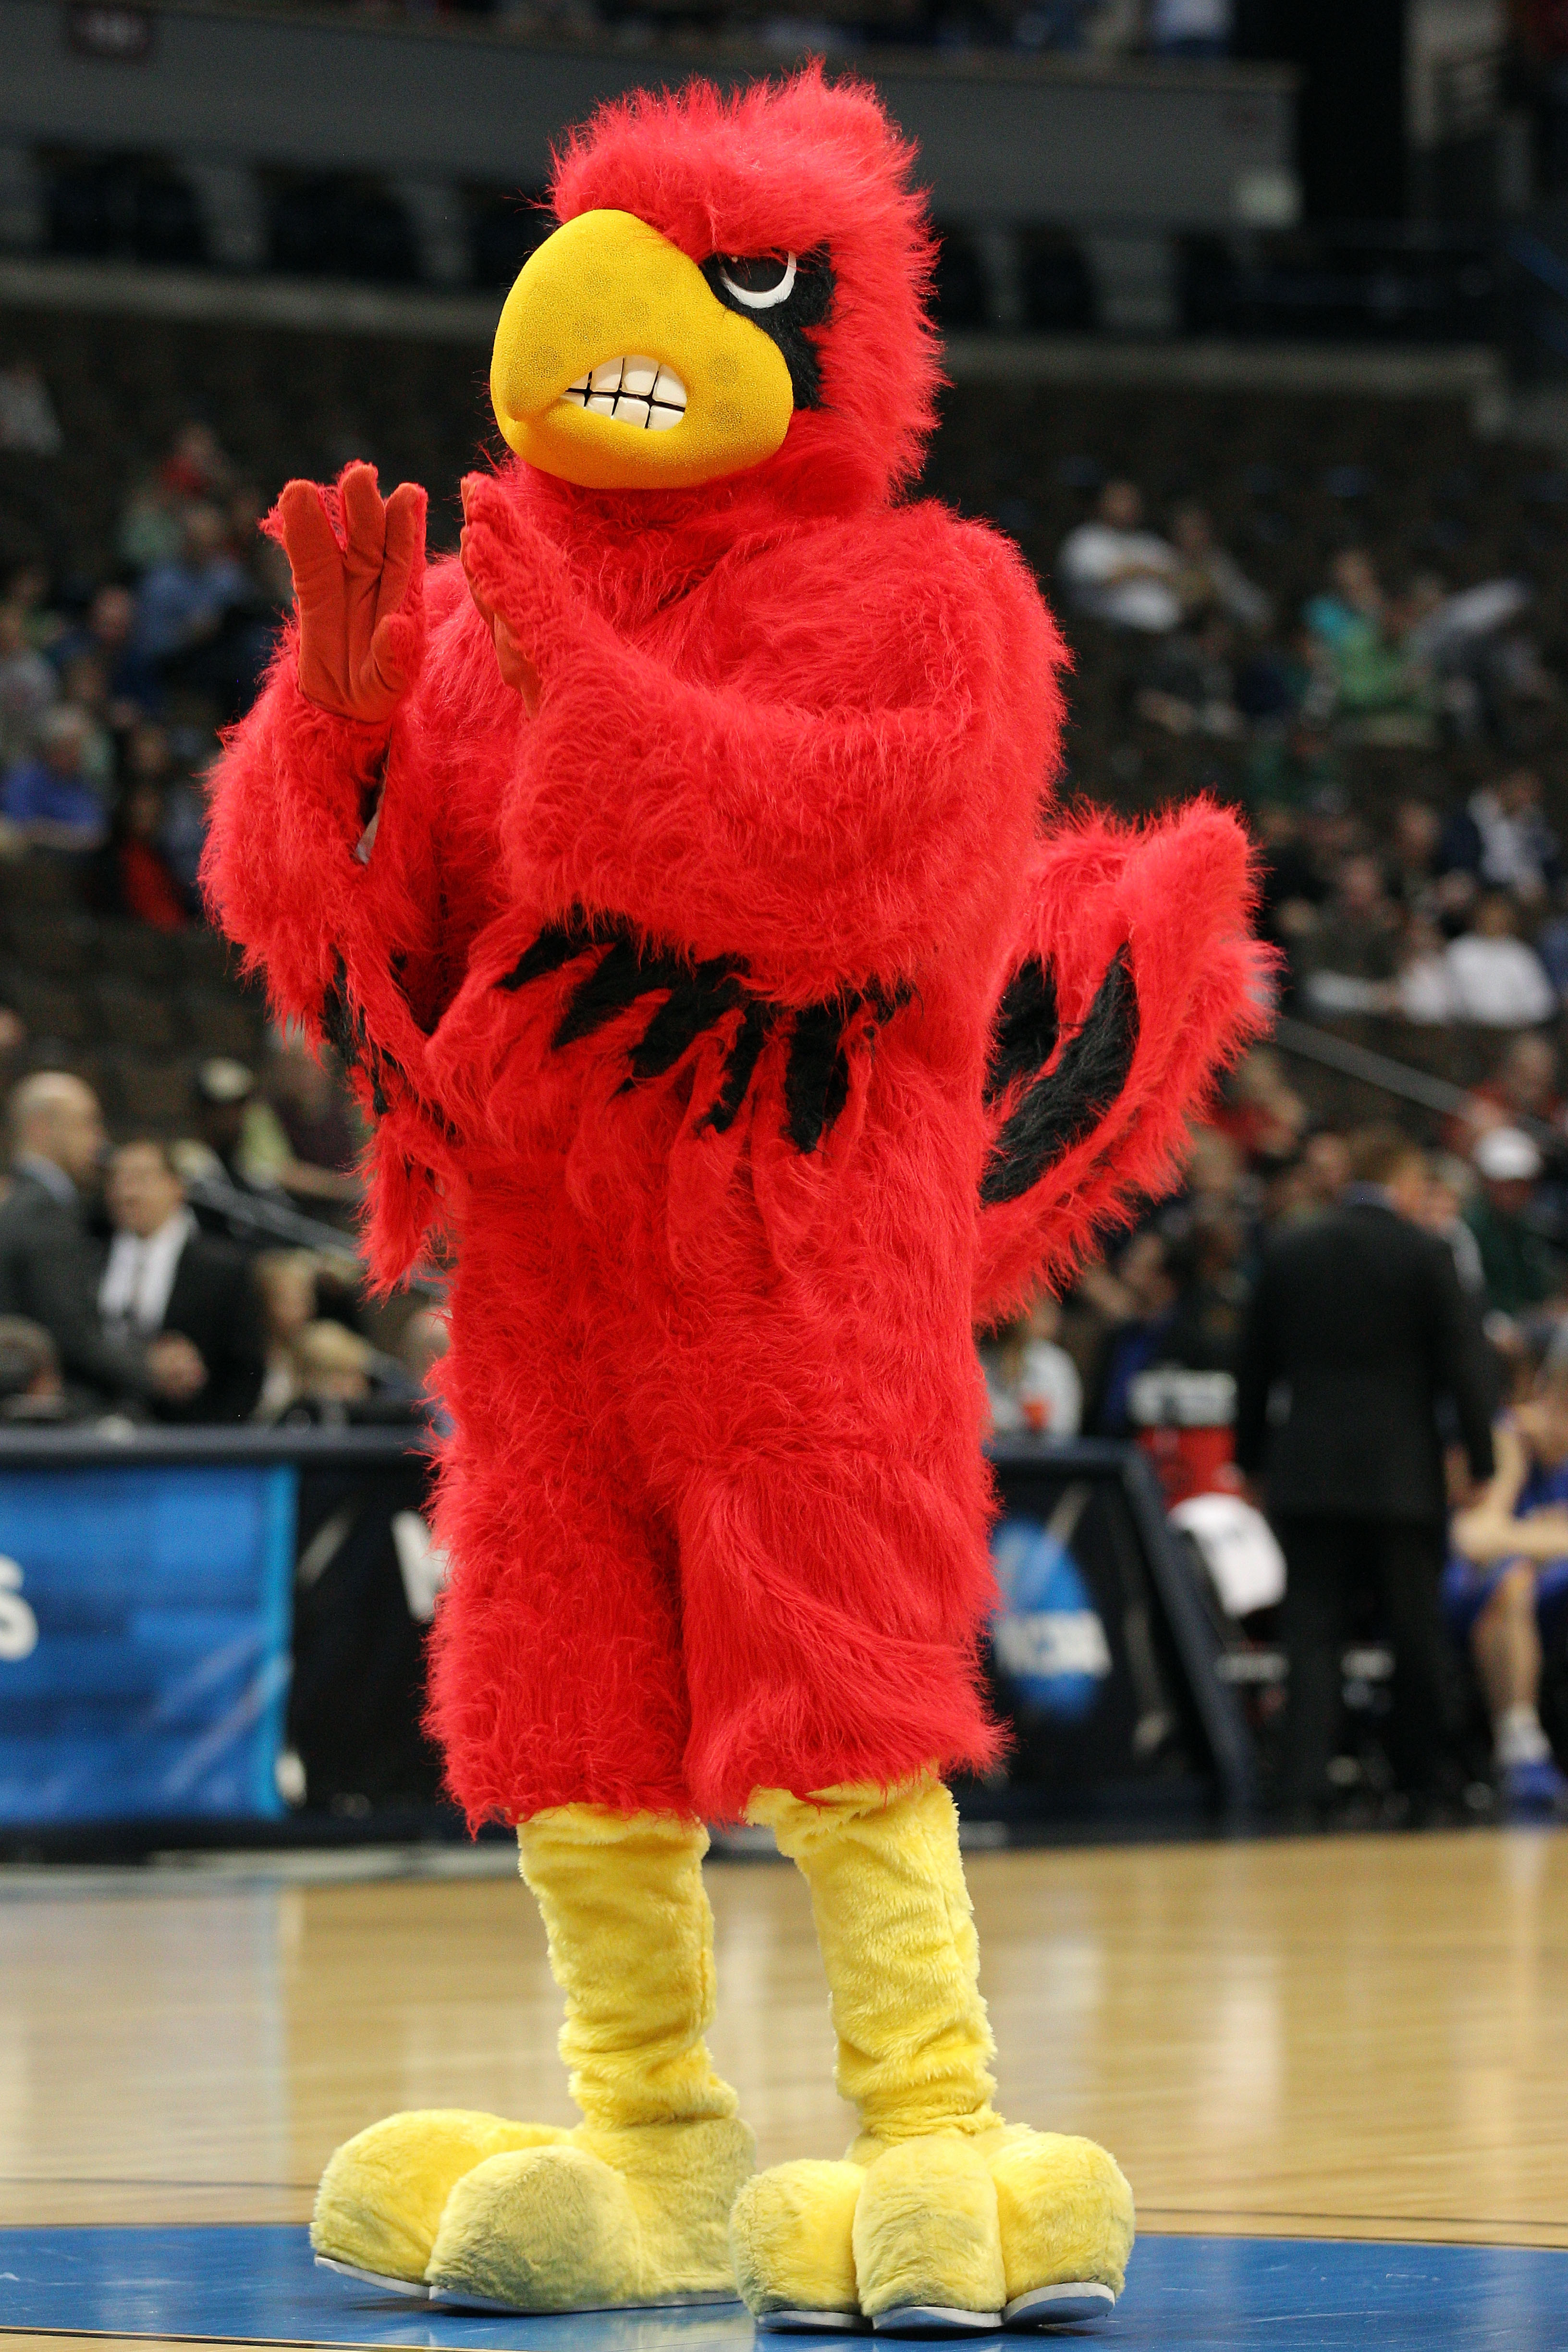 DENVER, CO - MARCH 17:  The mascot of the Louisville Cardinals performs prior to taking on the Morehead State Eagles in the second round of the 2011 NCAA men's basketball tournament at Pepsi Center on March 17, 2011 in Denver, Colorado.  (Photo by Justin